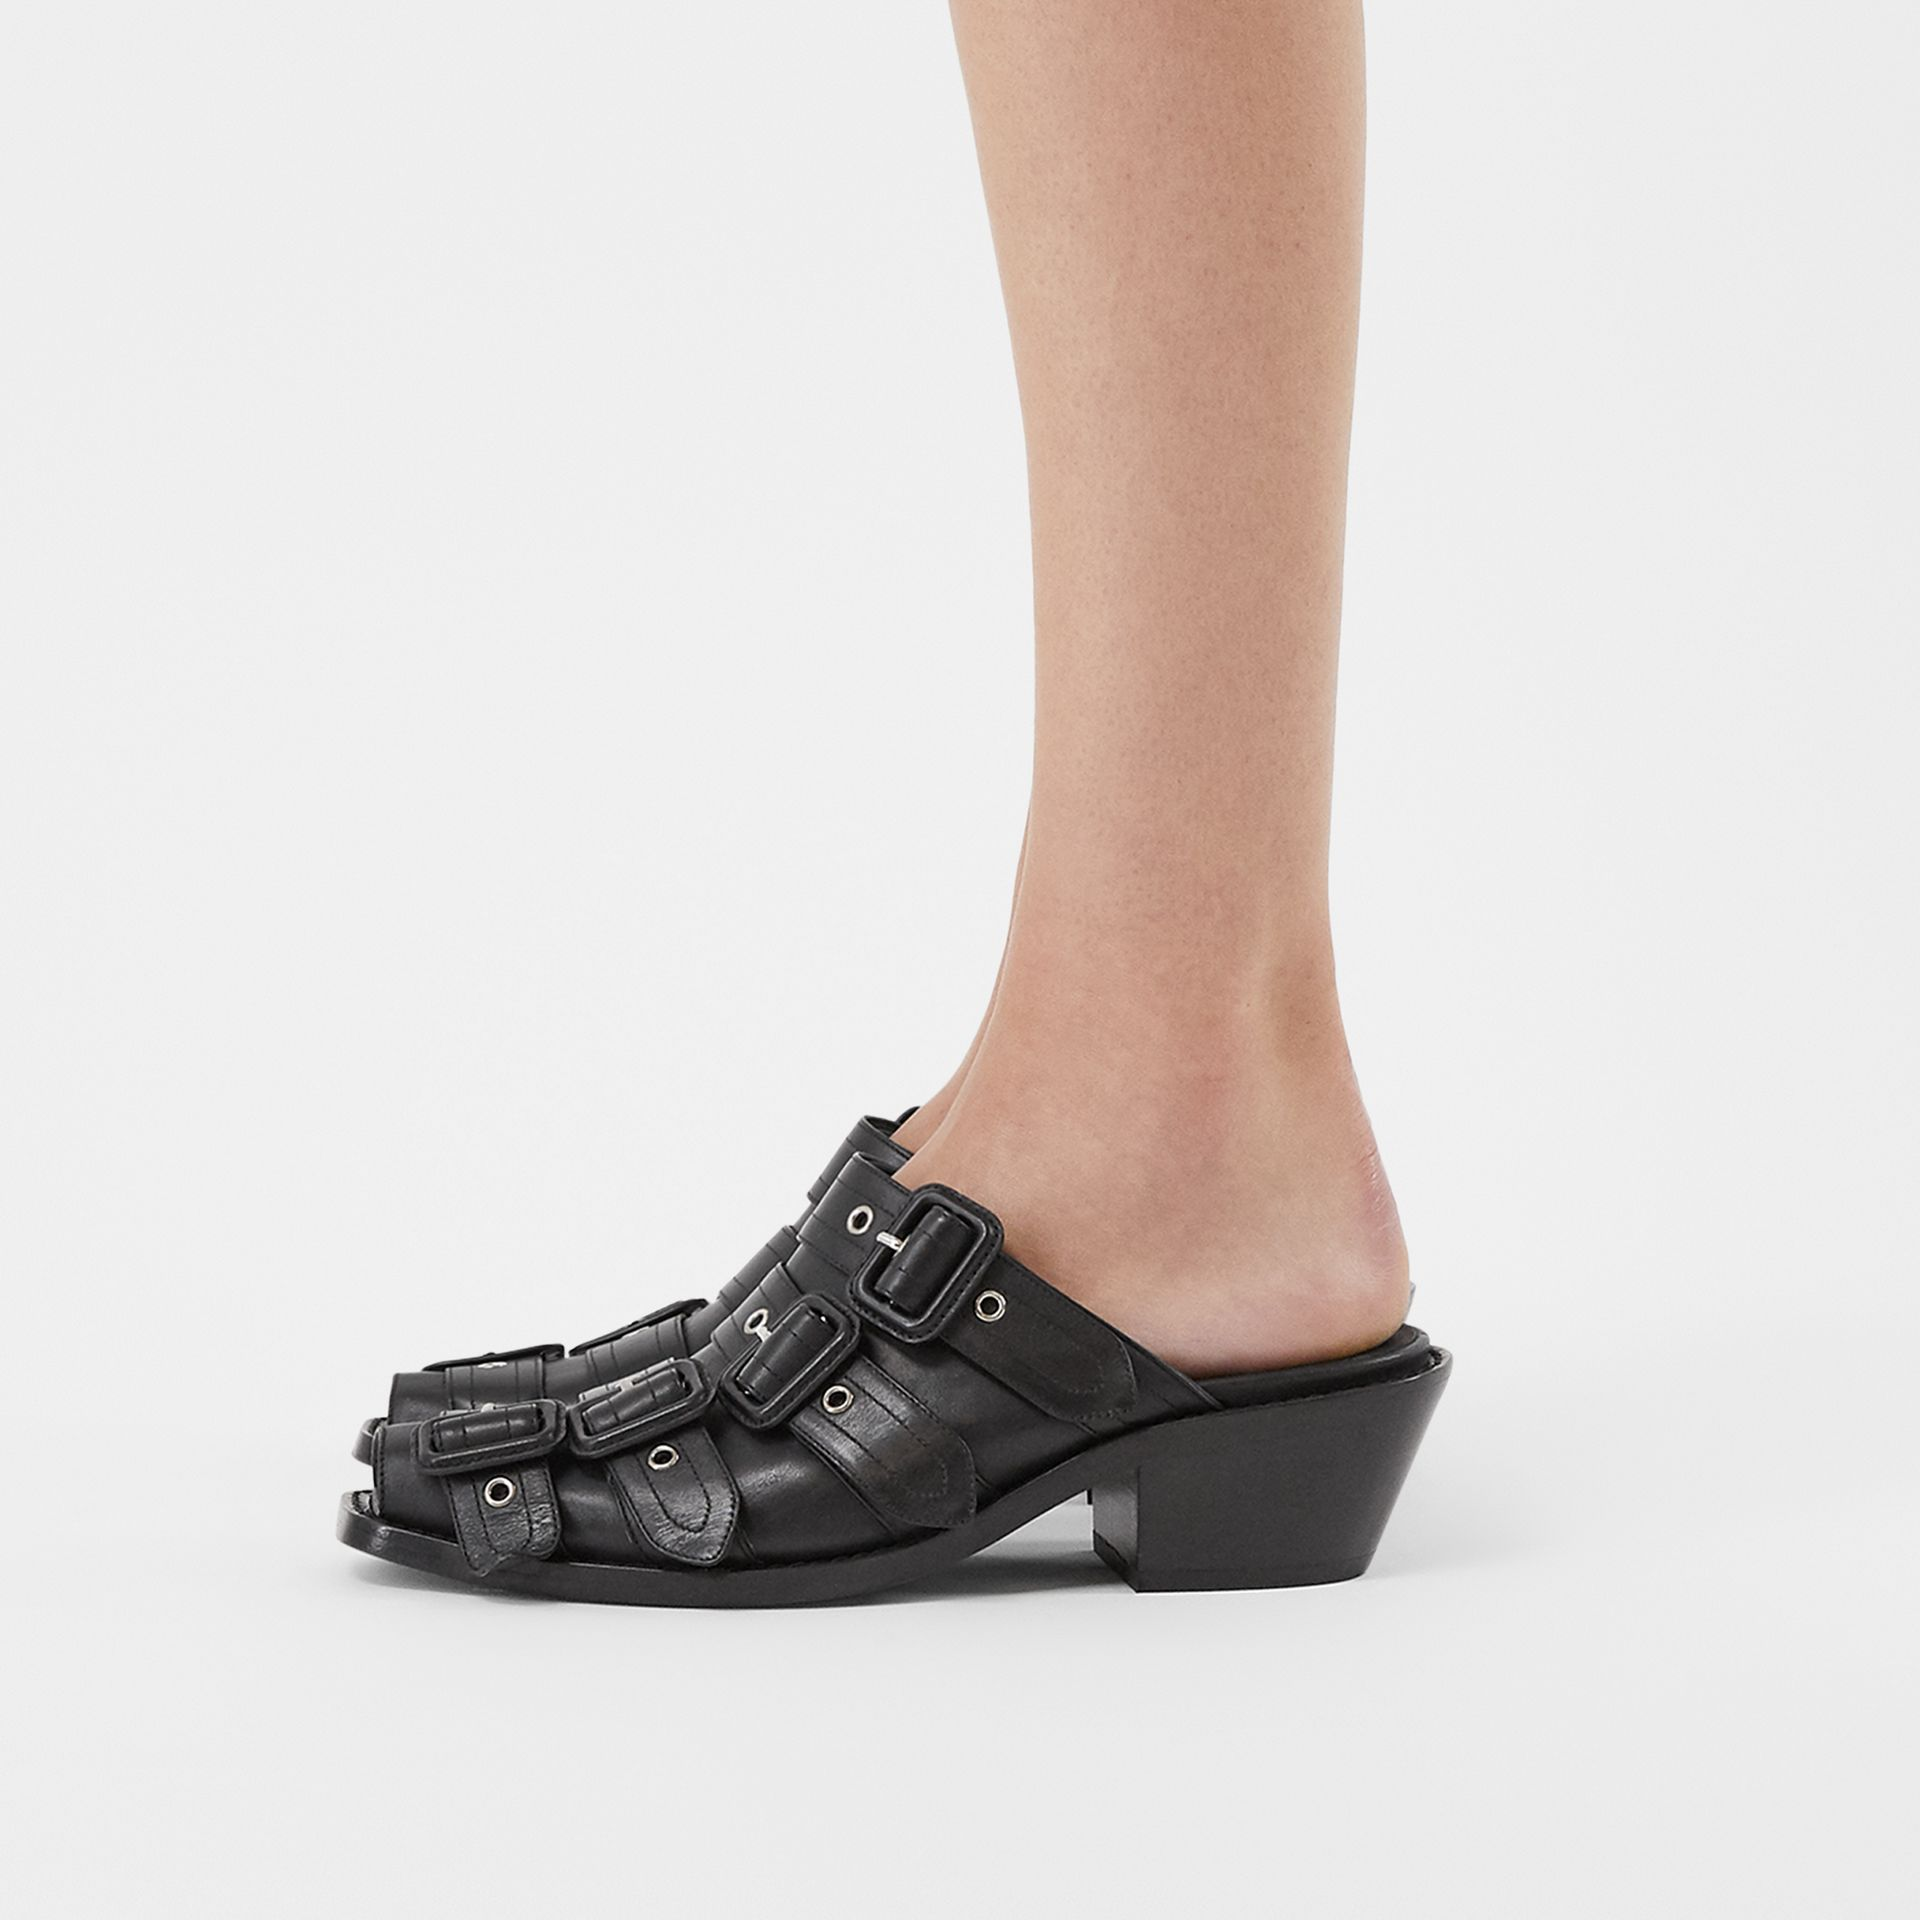 Buckled Leather Peep-toe Mules in Black - Women | Burberry - gallery image 2